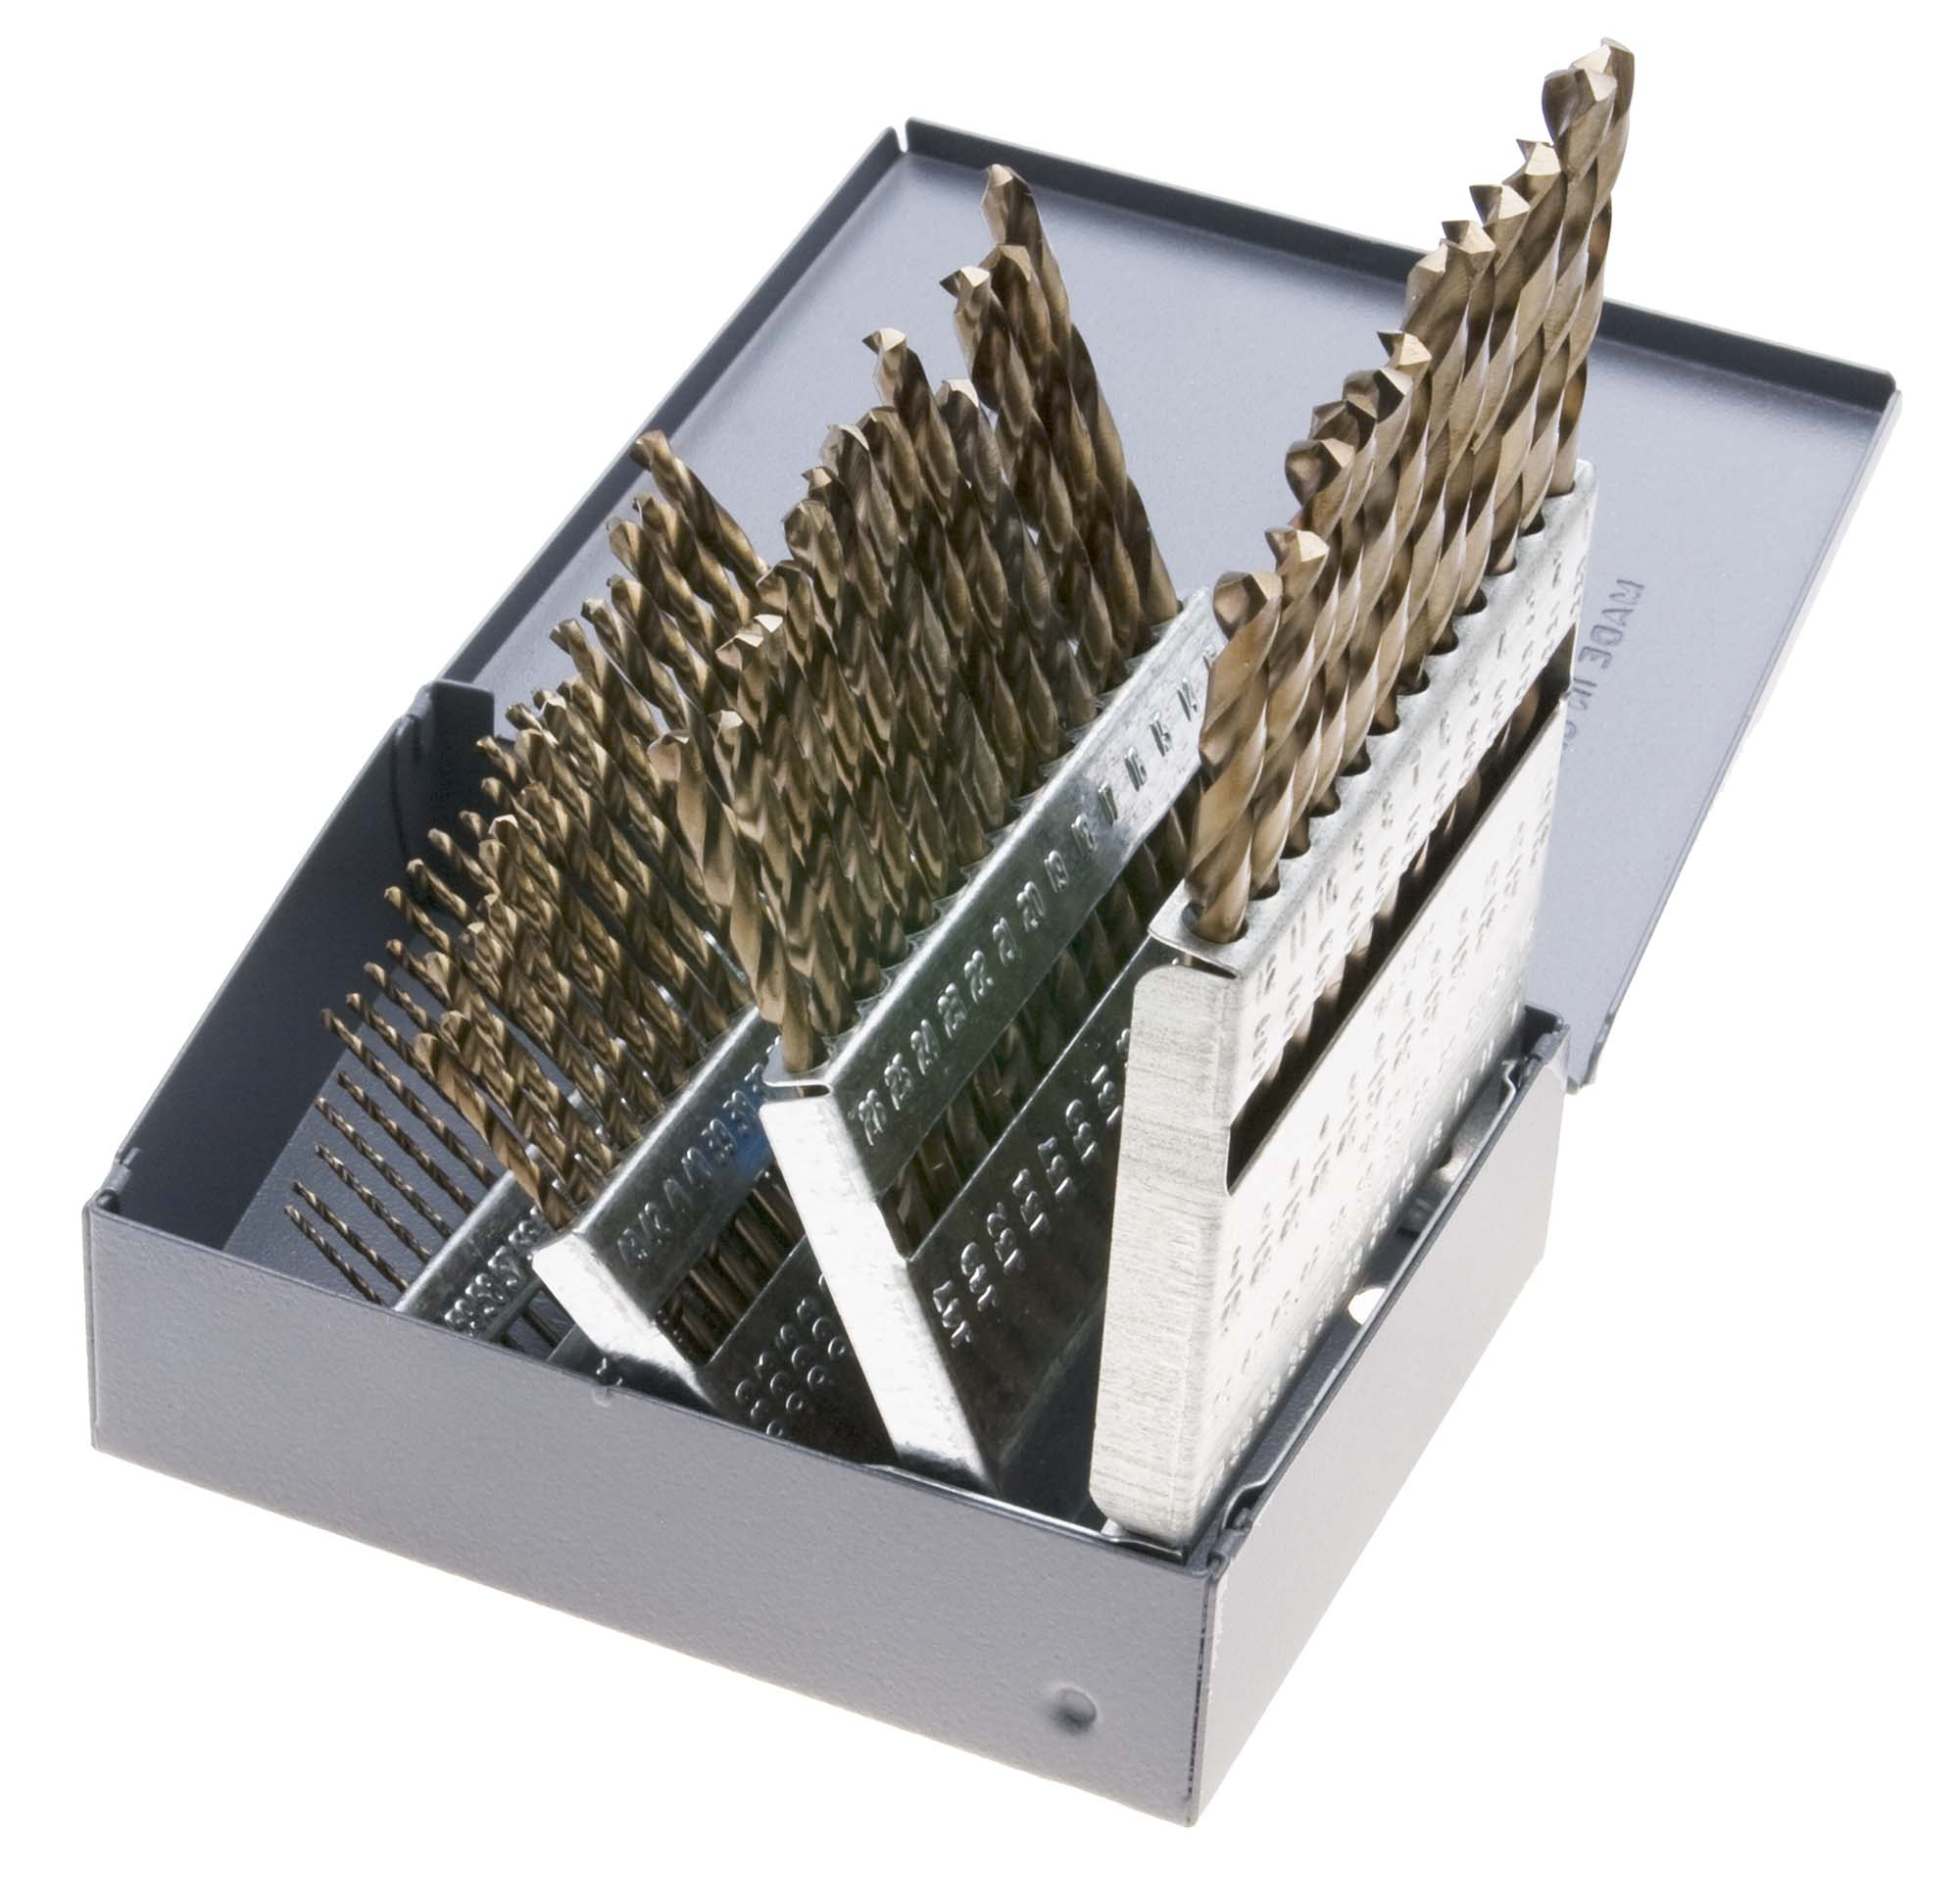 A-Z VME 26 Piece Cobalt Jobber Drill Bit Set in Metal Case